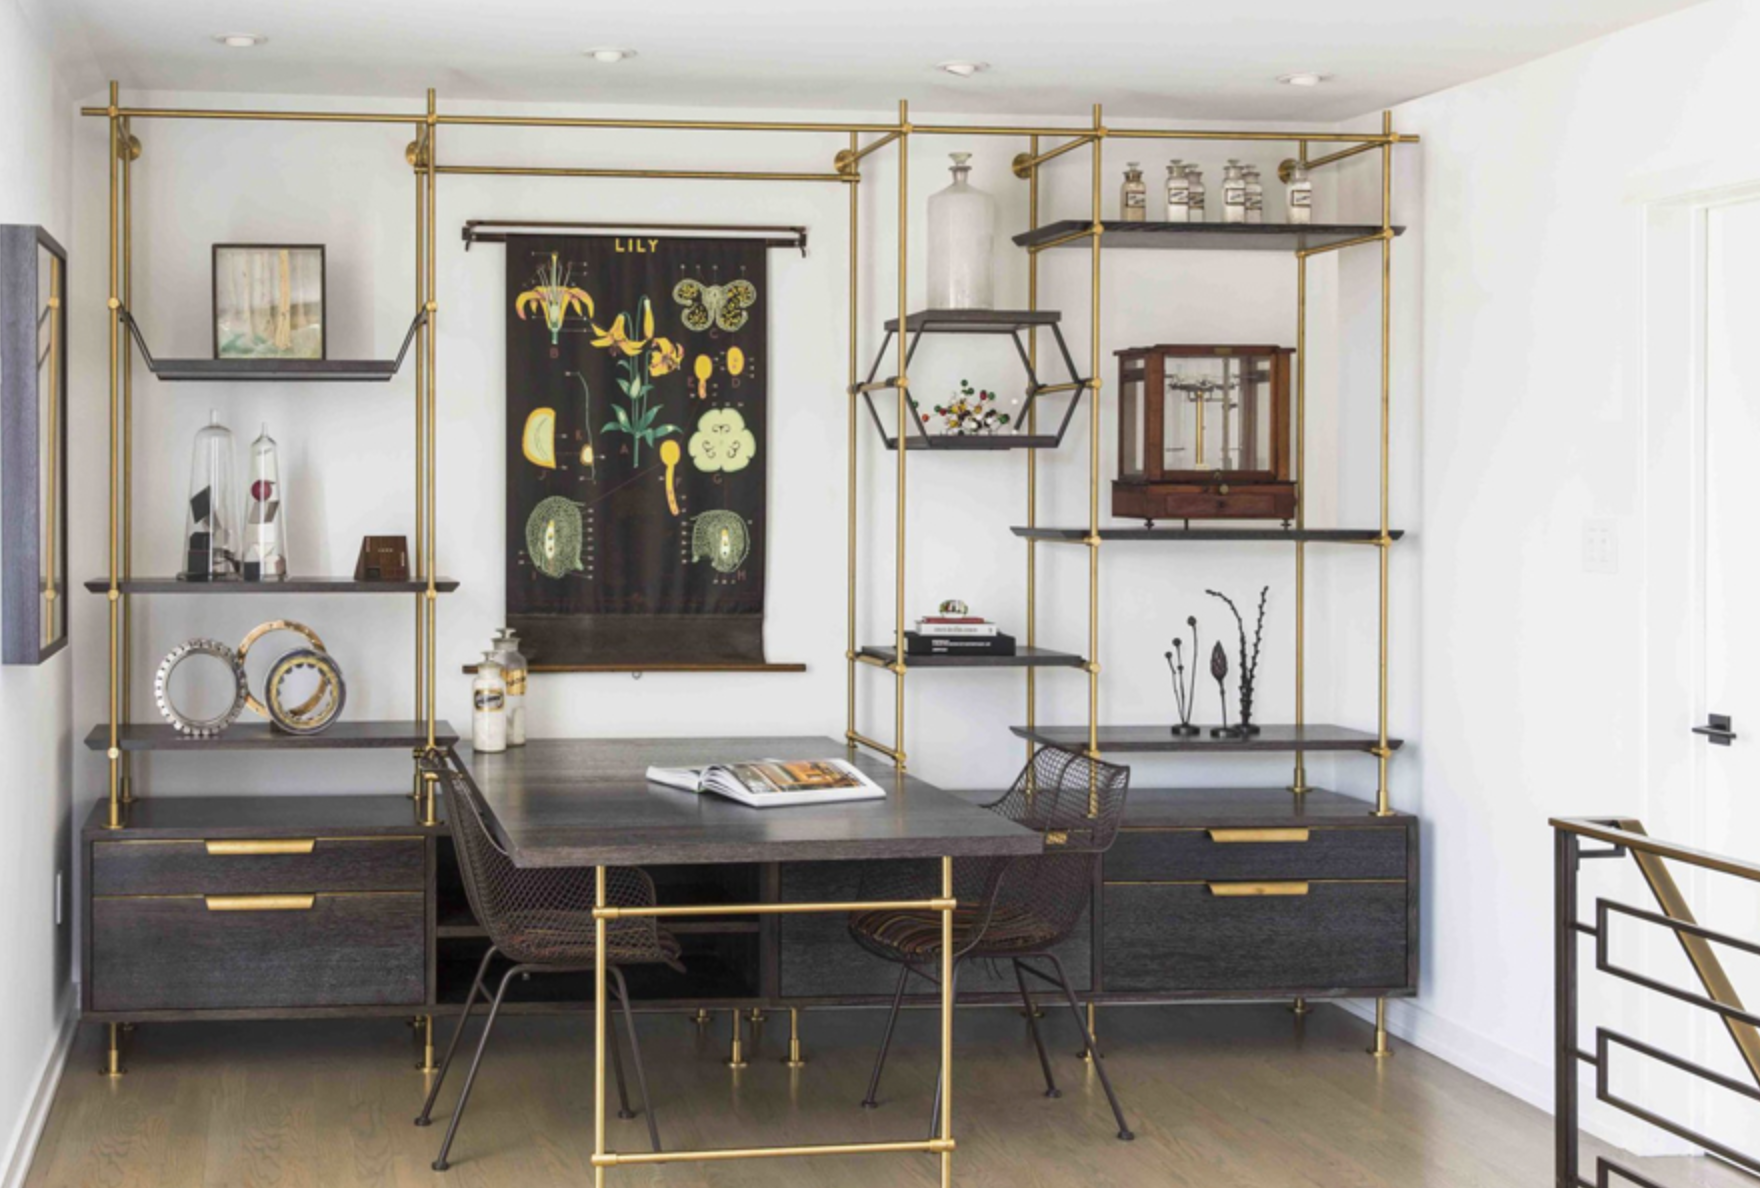 This Philadelphia home office features the Collector's shelving system in warm brass with oxidized and cerused oak, configured with a partners desk, adjustable display shelving, drawers and lateral files. Photo by Goldenberg Photography